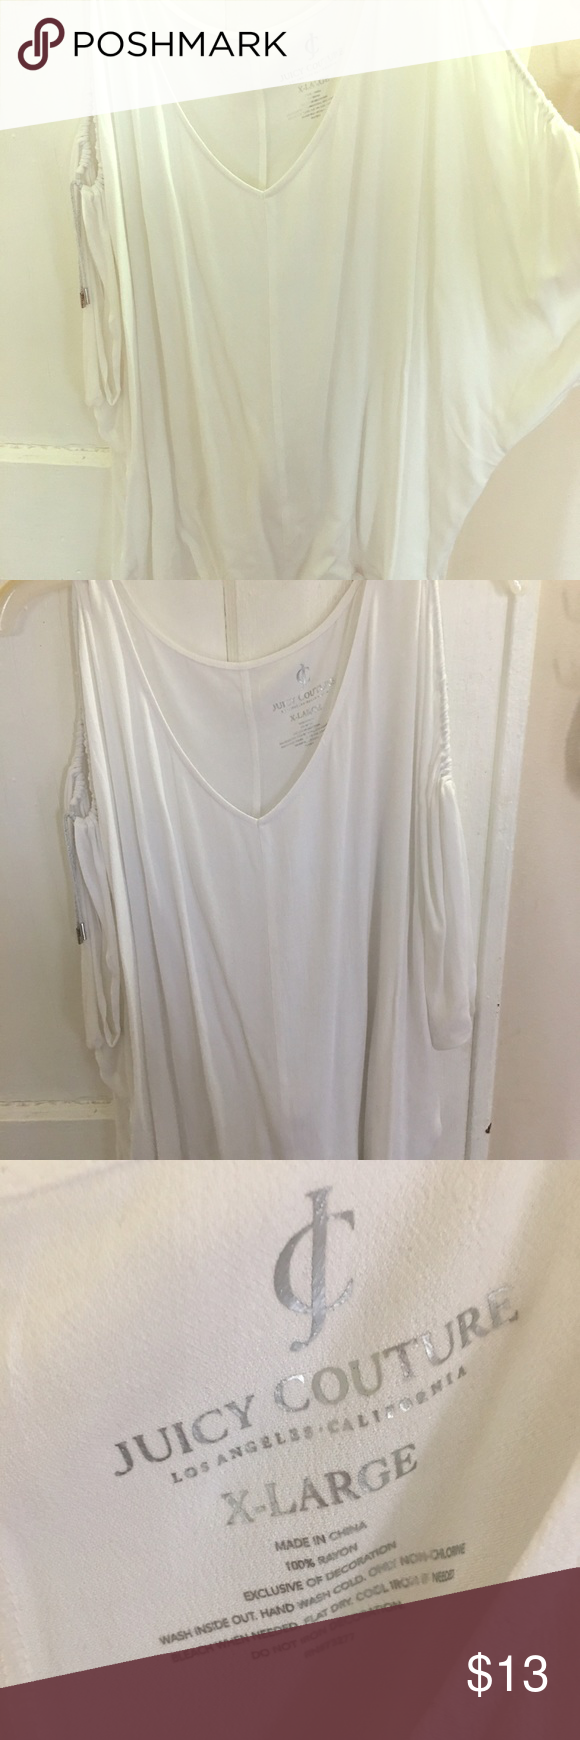 White blouse Off the shoulder white blouse with cutouts between shoulder and mid arm length , nice style for spring and summer season! 🌸 Juicy Couture Tops Blouses